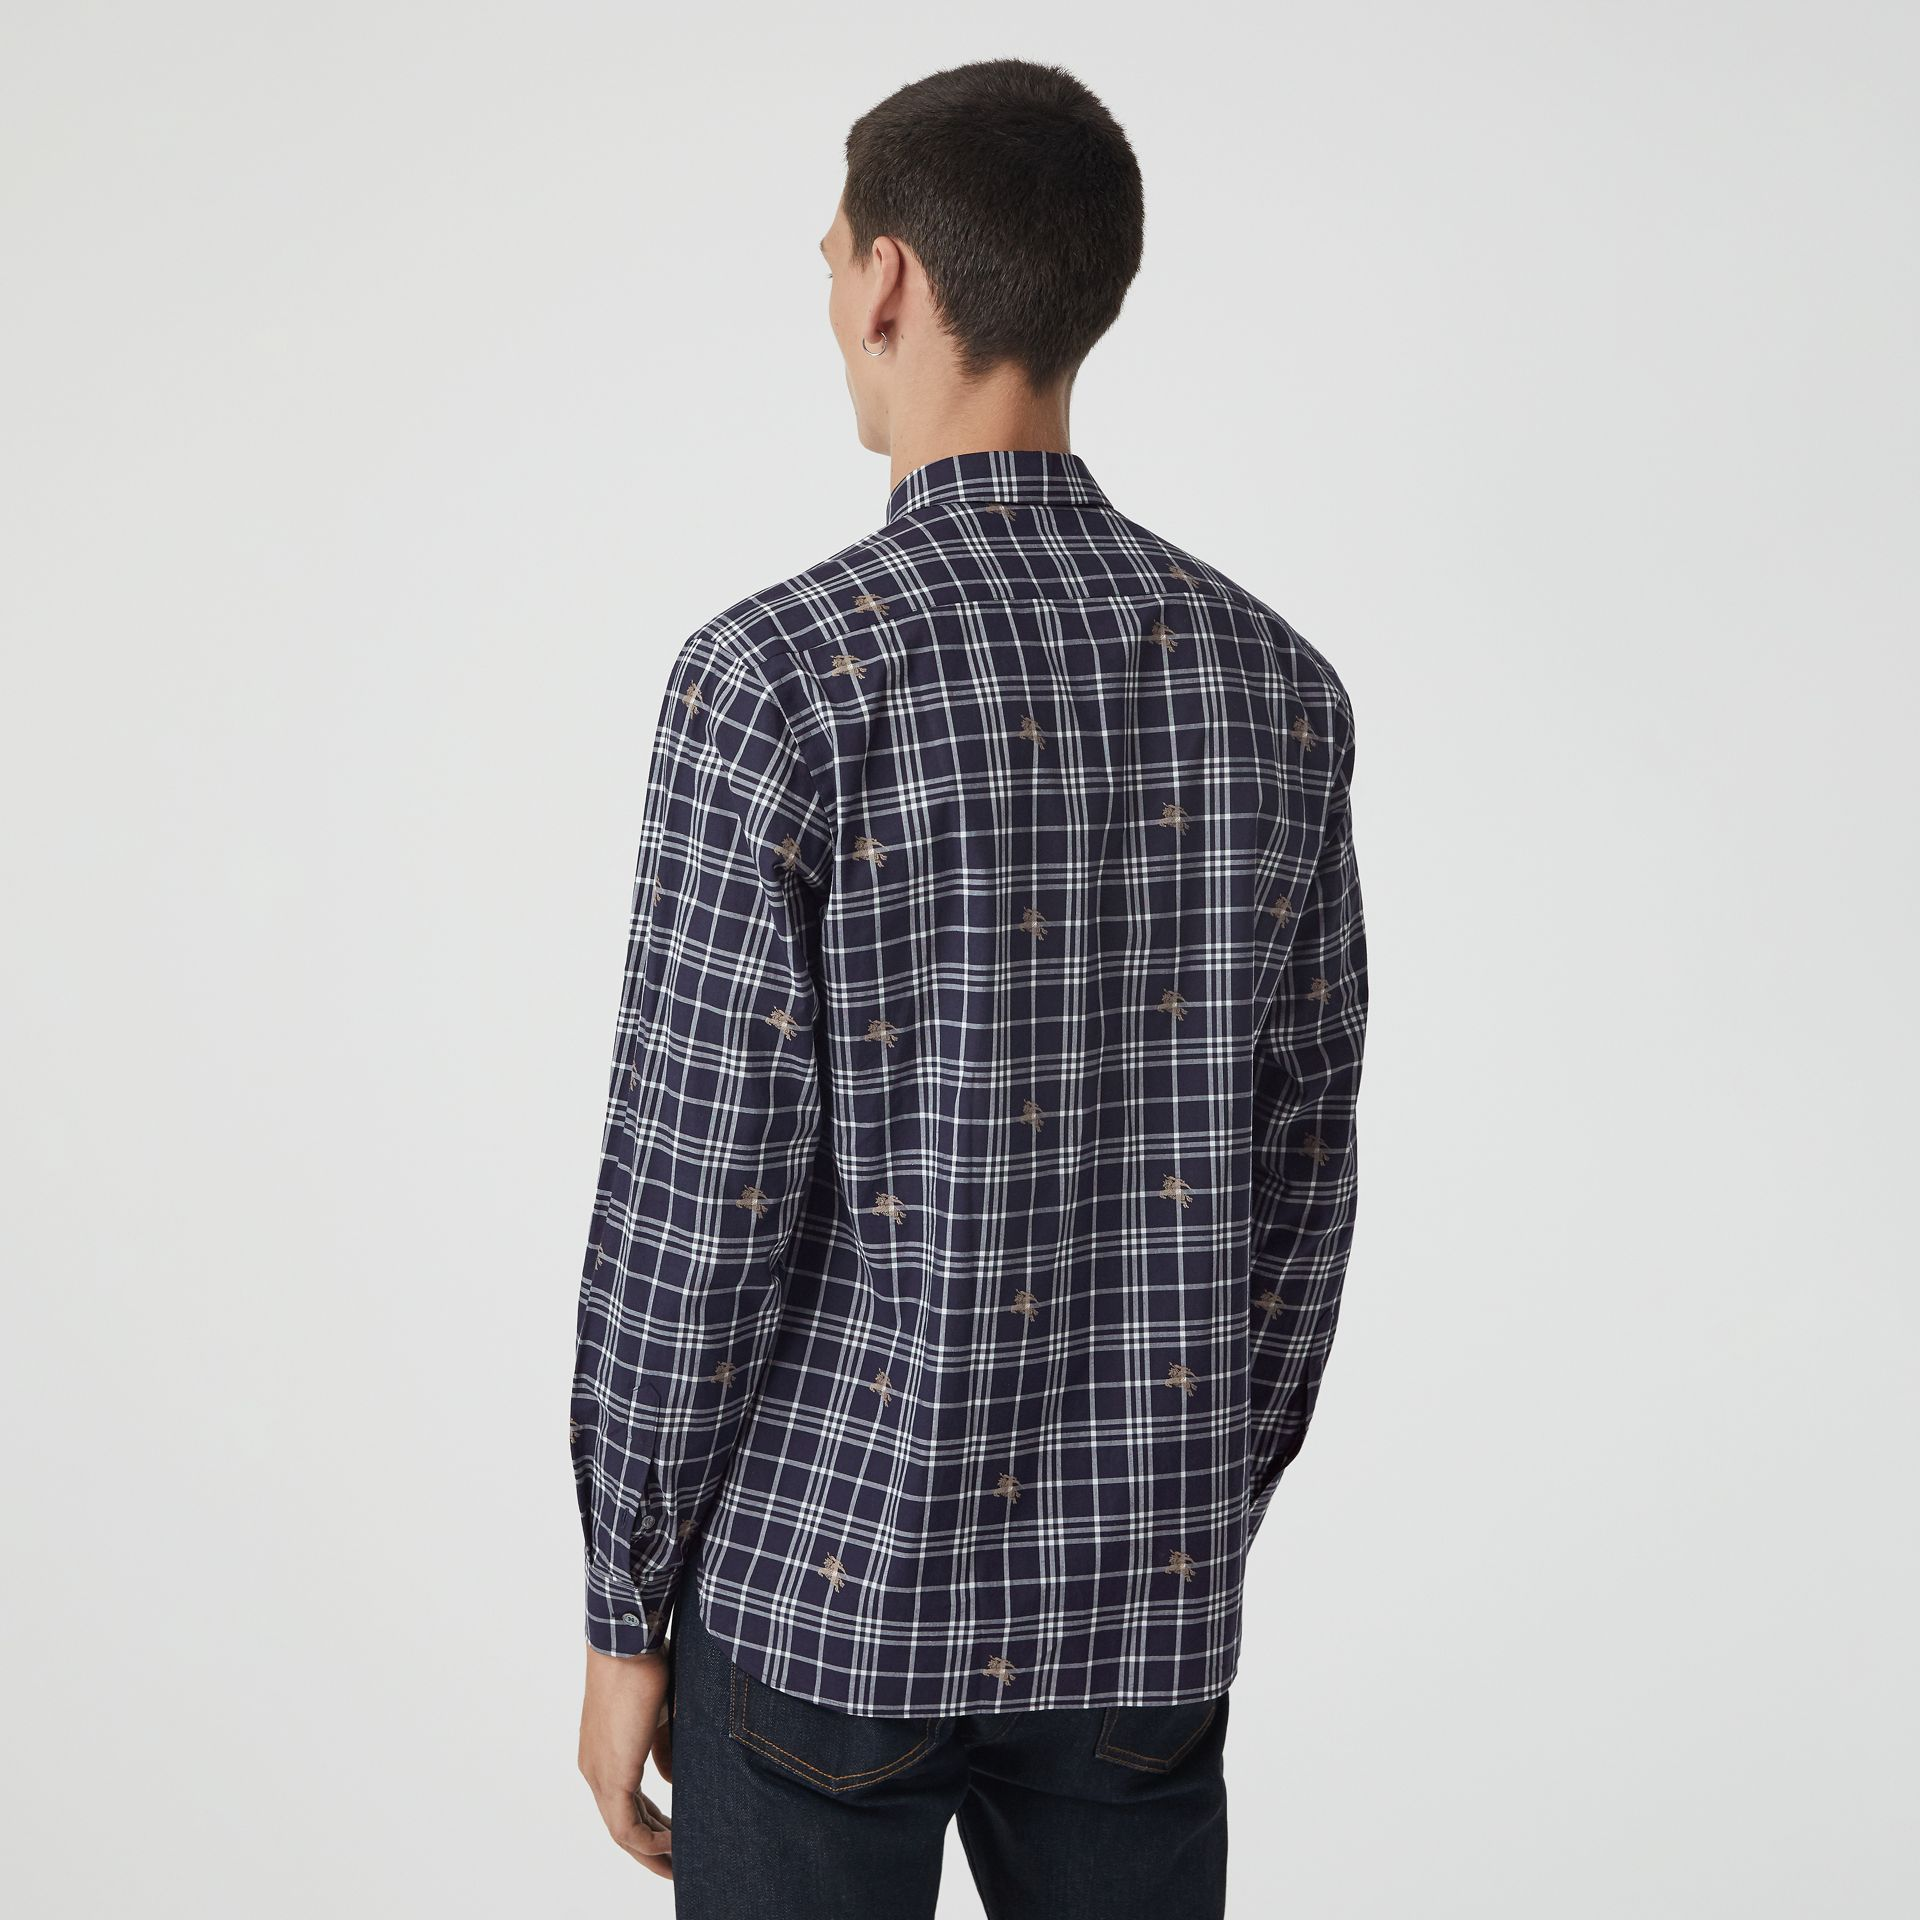 Equestrian Knight Check Cotton Shirt in Navy - Men | Burberry Australia - gallery image 2